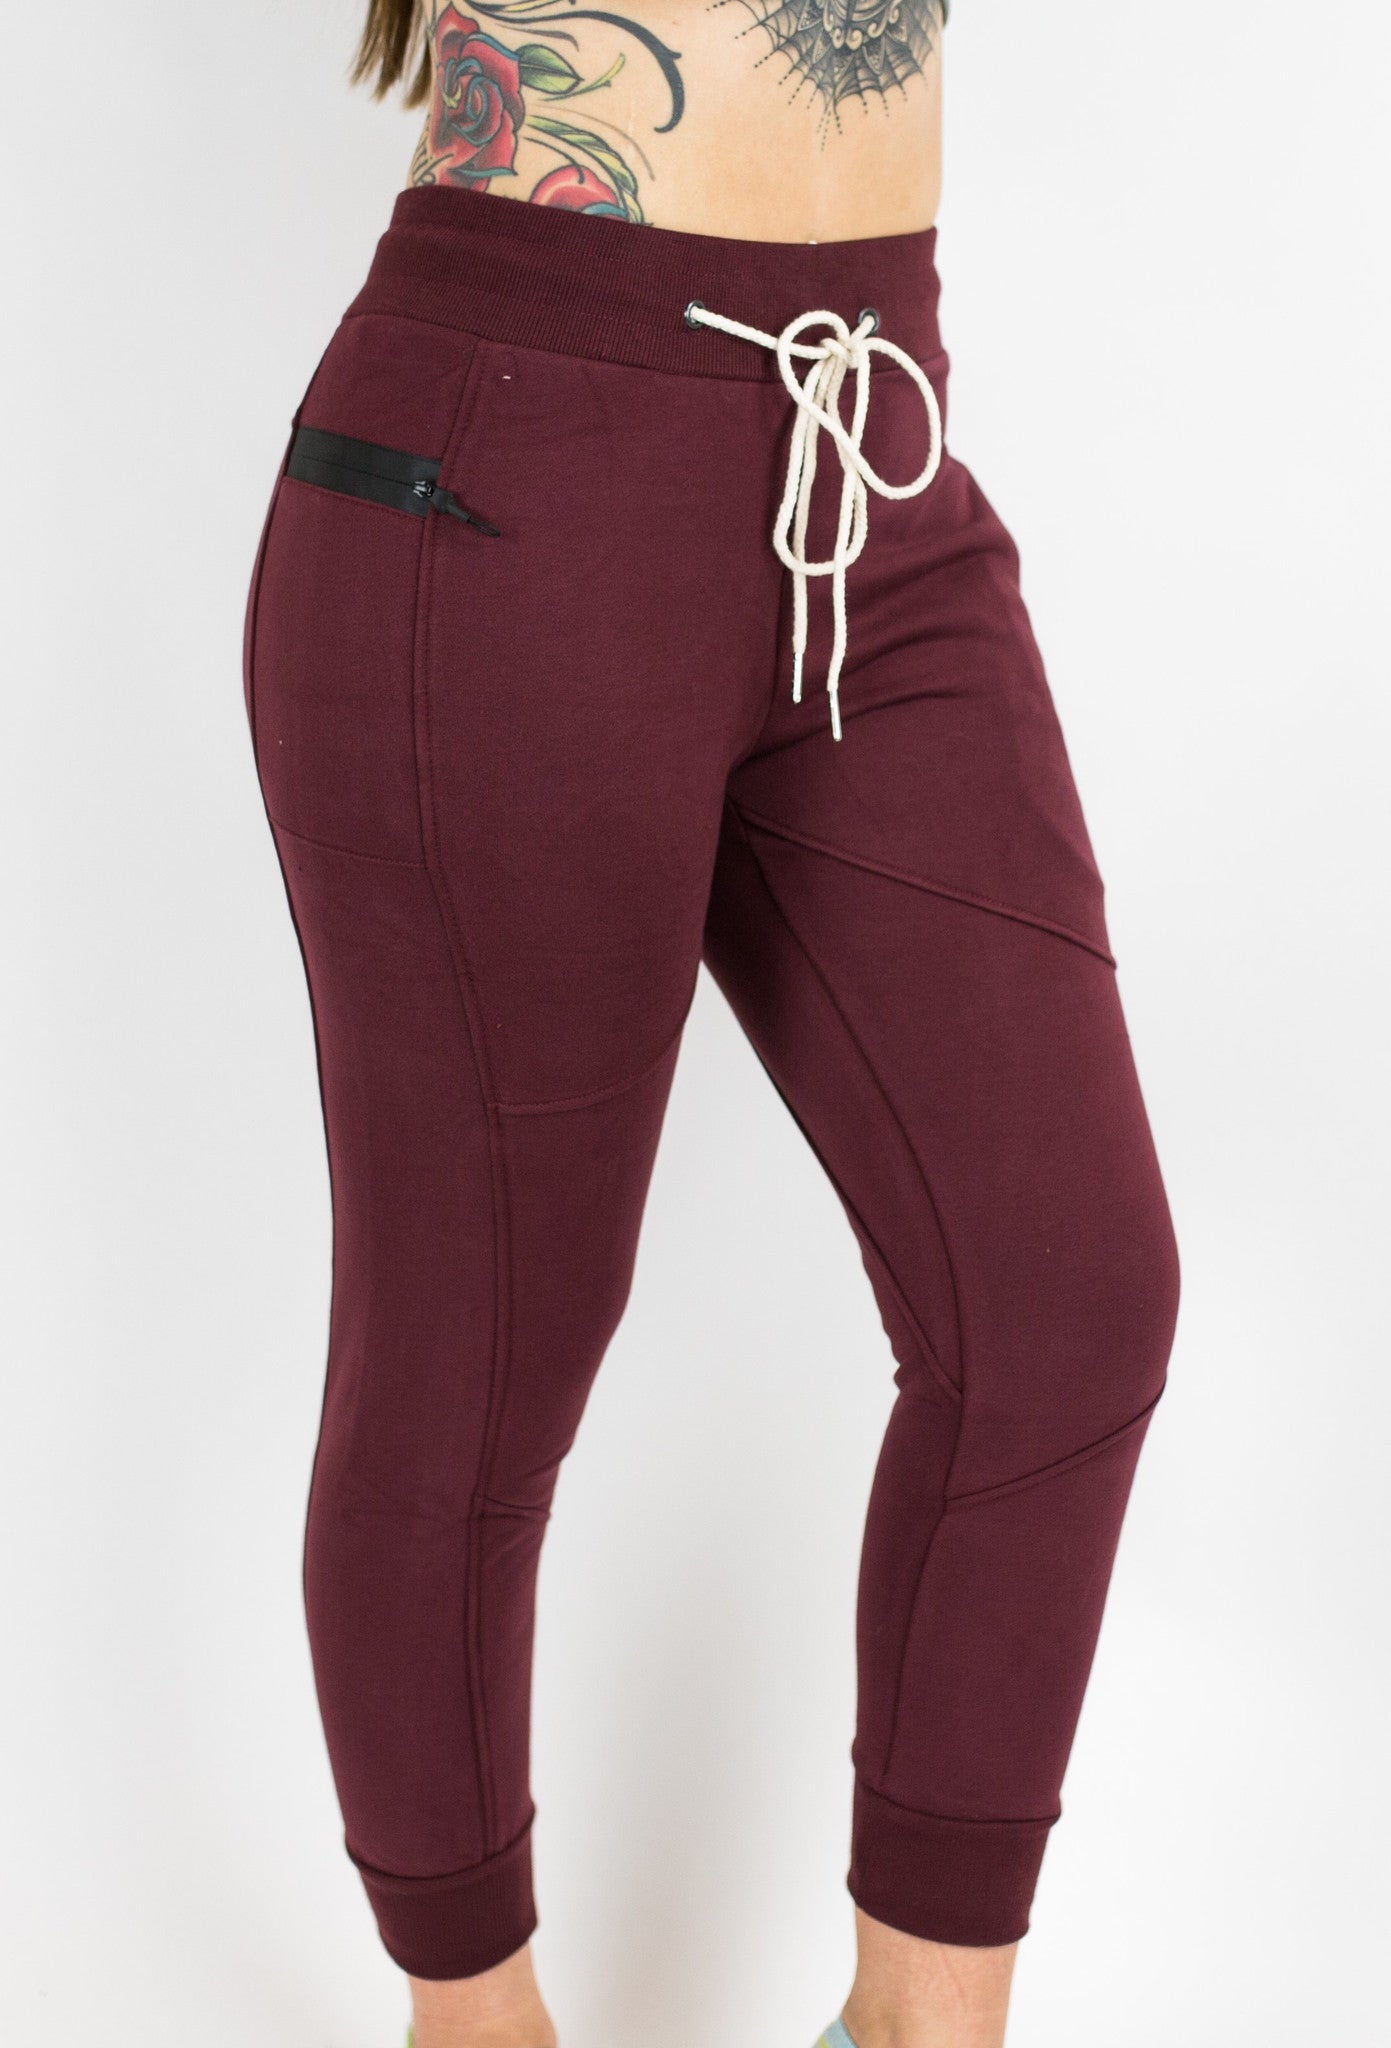 7/8 Fleece Joggers - Burgundy